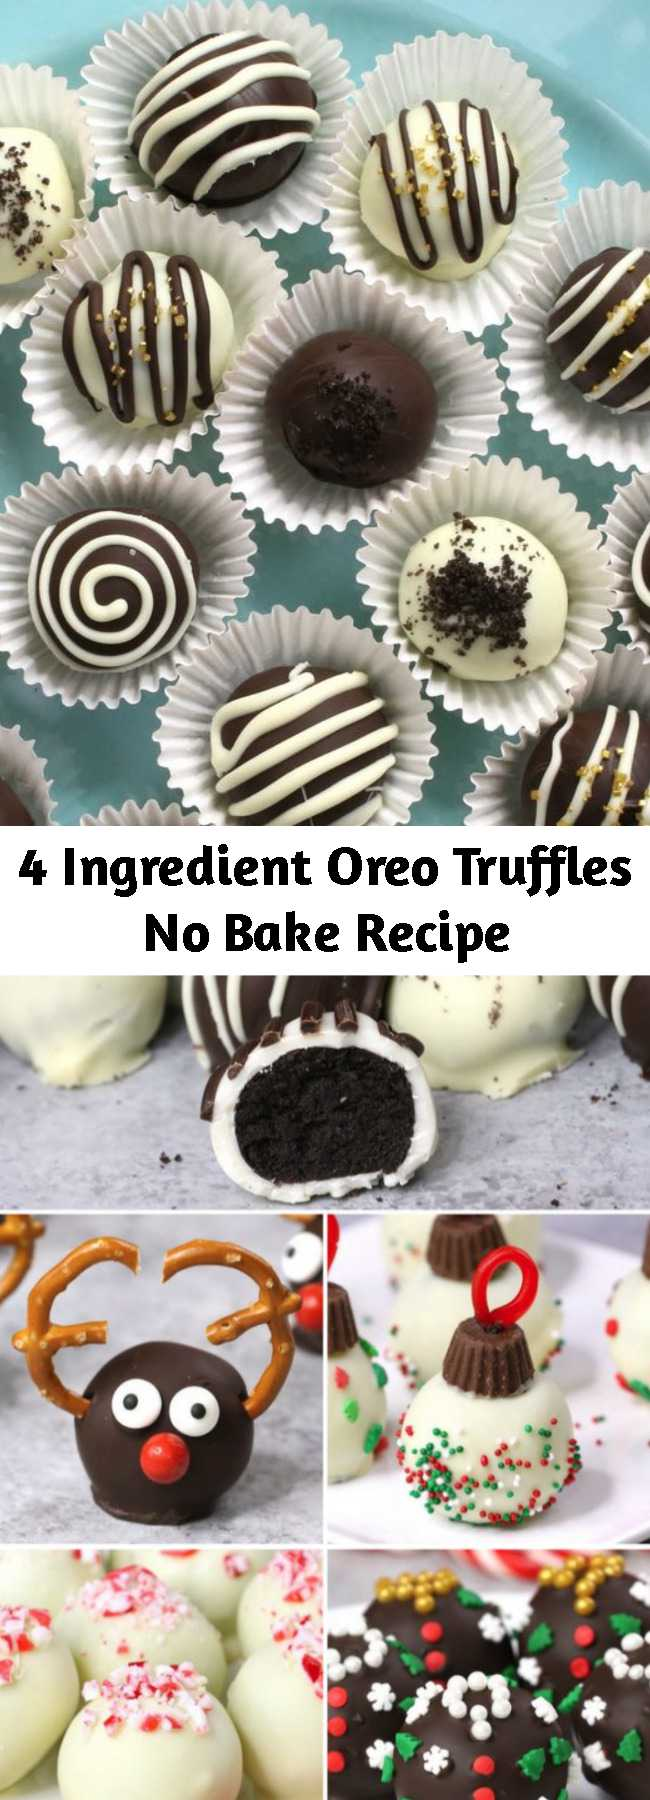 4 Ingredient Oreo Truffles No Bake Recipe - These Oreo Truffles are mouthwatering bite-size treat everyone will love! These homemade oreo balls are coated in chocolate and decorated with sprinkles and drizzle for a stunning presentation. Perfect for a party and also as fun DIY gifts.